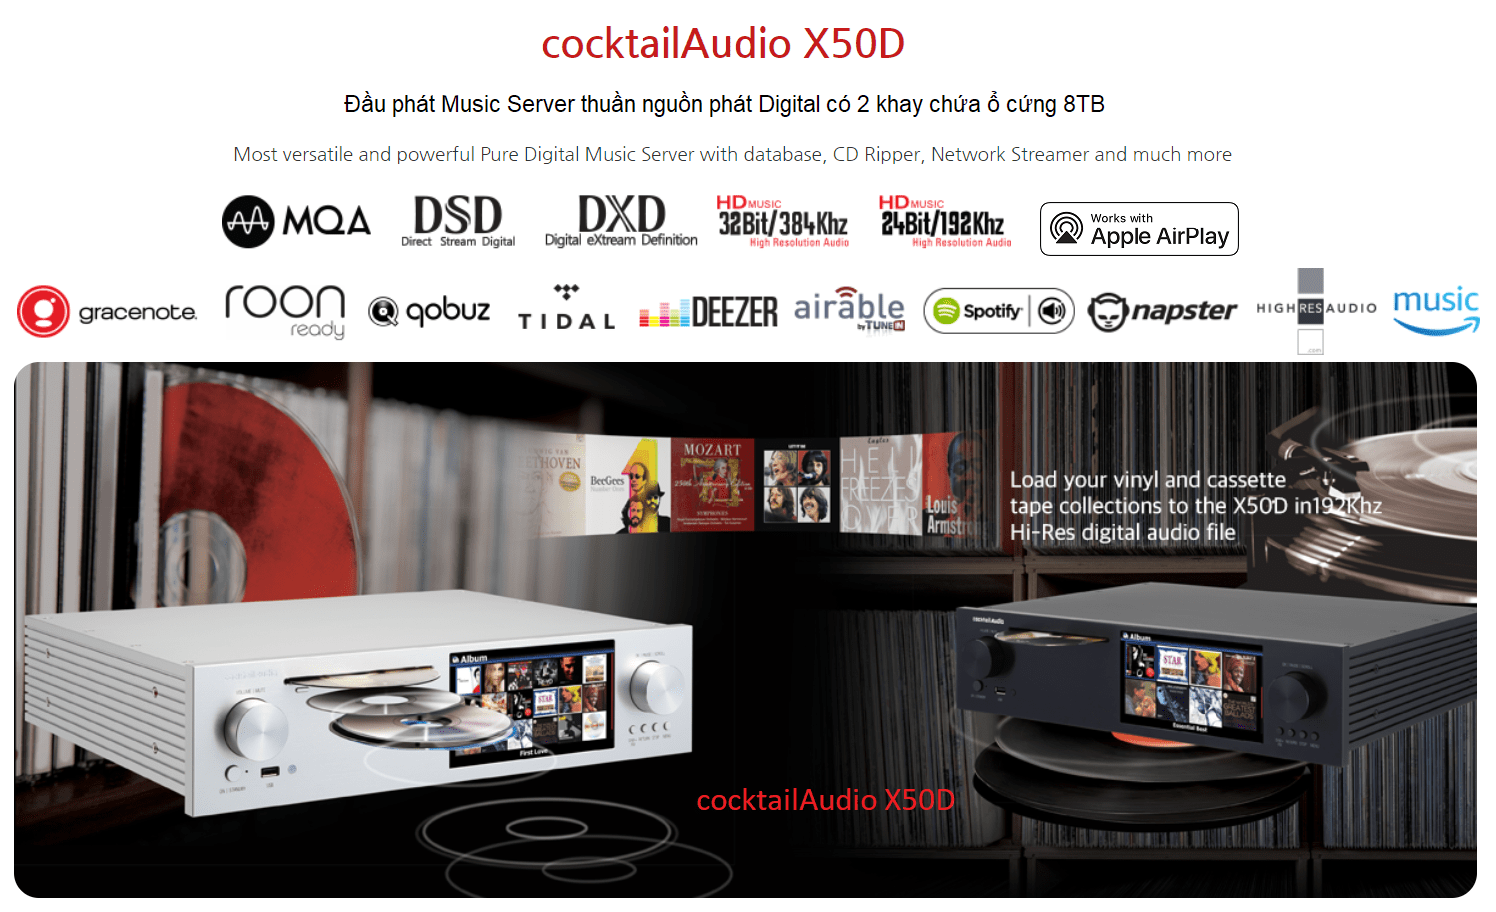 Cocktail Audio X50D | Anh Duy Audio